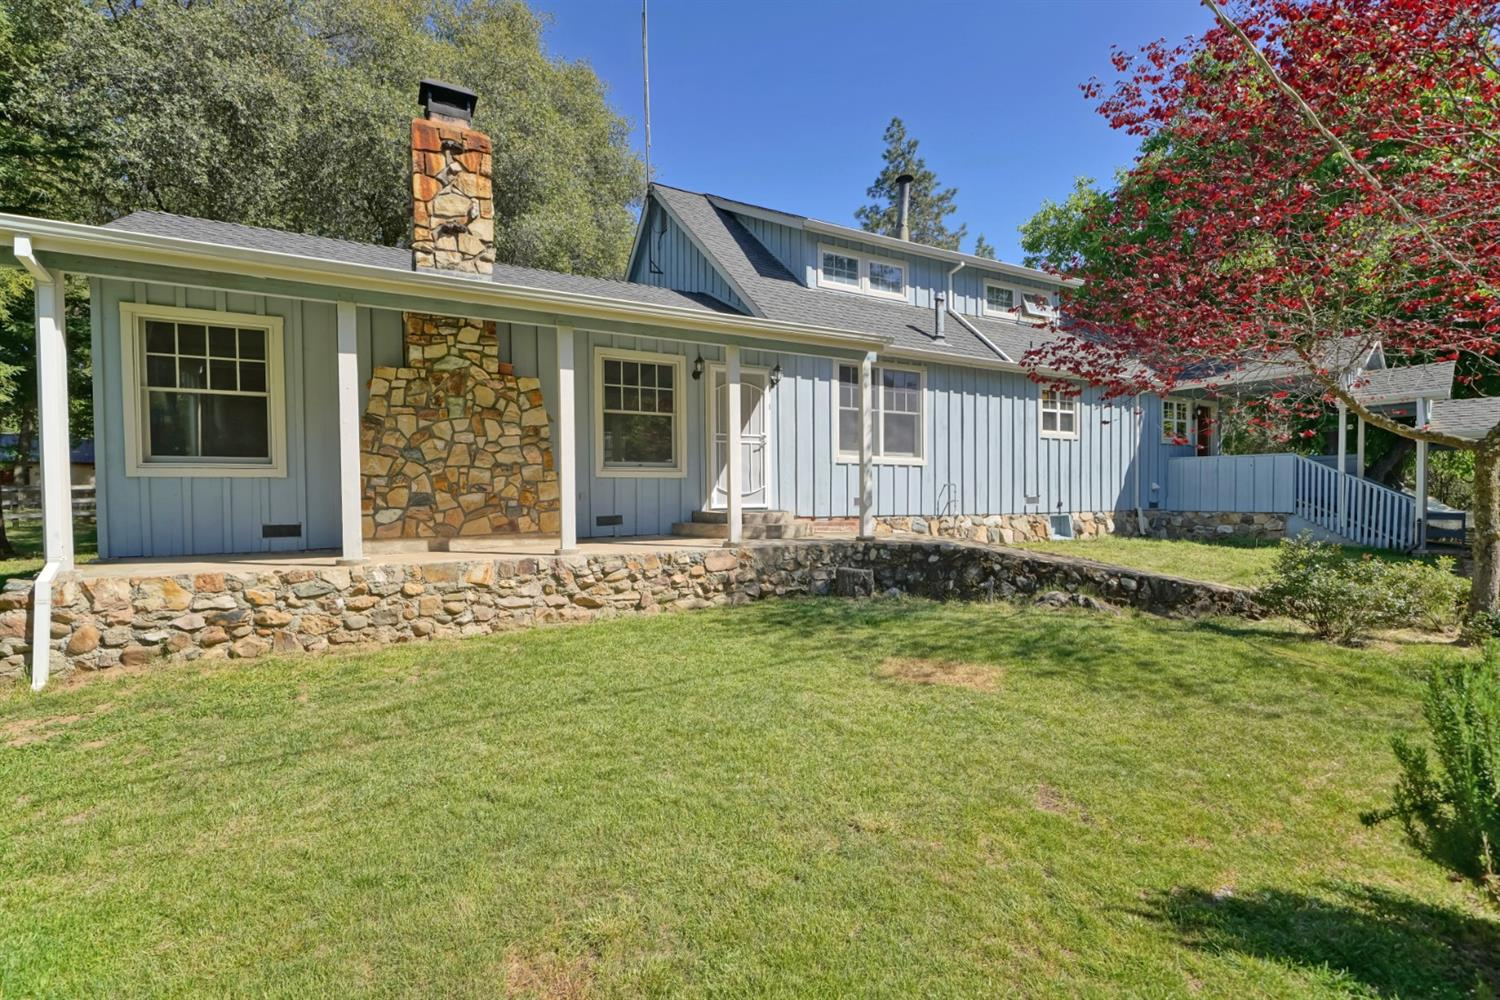 Rustic charm abounds at this ranch home in foothill wine country w/ fully fenced usable 2.5 acres & seasonal creek. Covered country front porch leads to gorgeous great room w/ knotty pine T&G open beamed ceiling & unique custom milled wood floors. Finishing touches incl a wood burning fireplace insert & rock surround, large picture window & custom built-in bookshelves & cabinets. Alley style kitchen w/ granite counters, butcher block prep sink & dining bar. Home has 4 bdrms, 2 downstairs & 2 upstairs. Bring your animals & hobbies! Property has a 2-car detached garage w/ workshop, outbuilding w/ bath & potential for kitchen that could be guest house/in-law quarters, chicken coop, fenced garden, & a variety of trees incl walnut, apple, oak, s